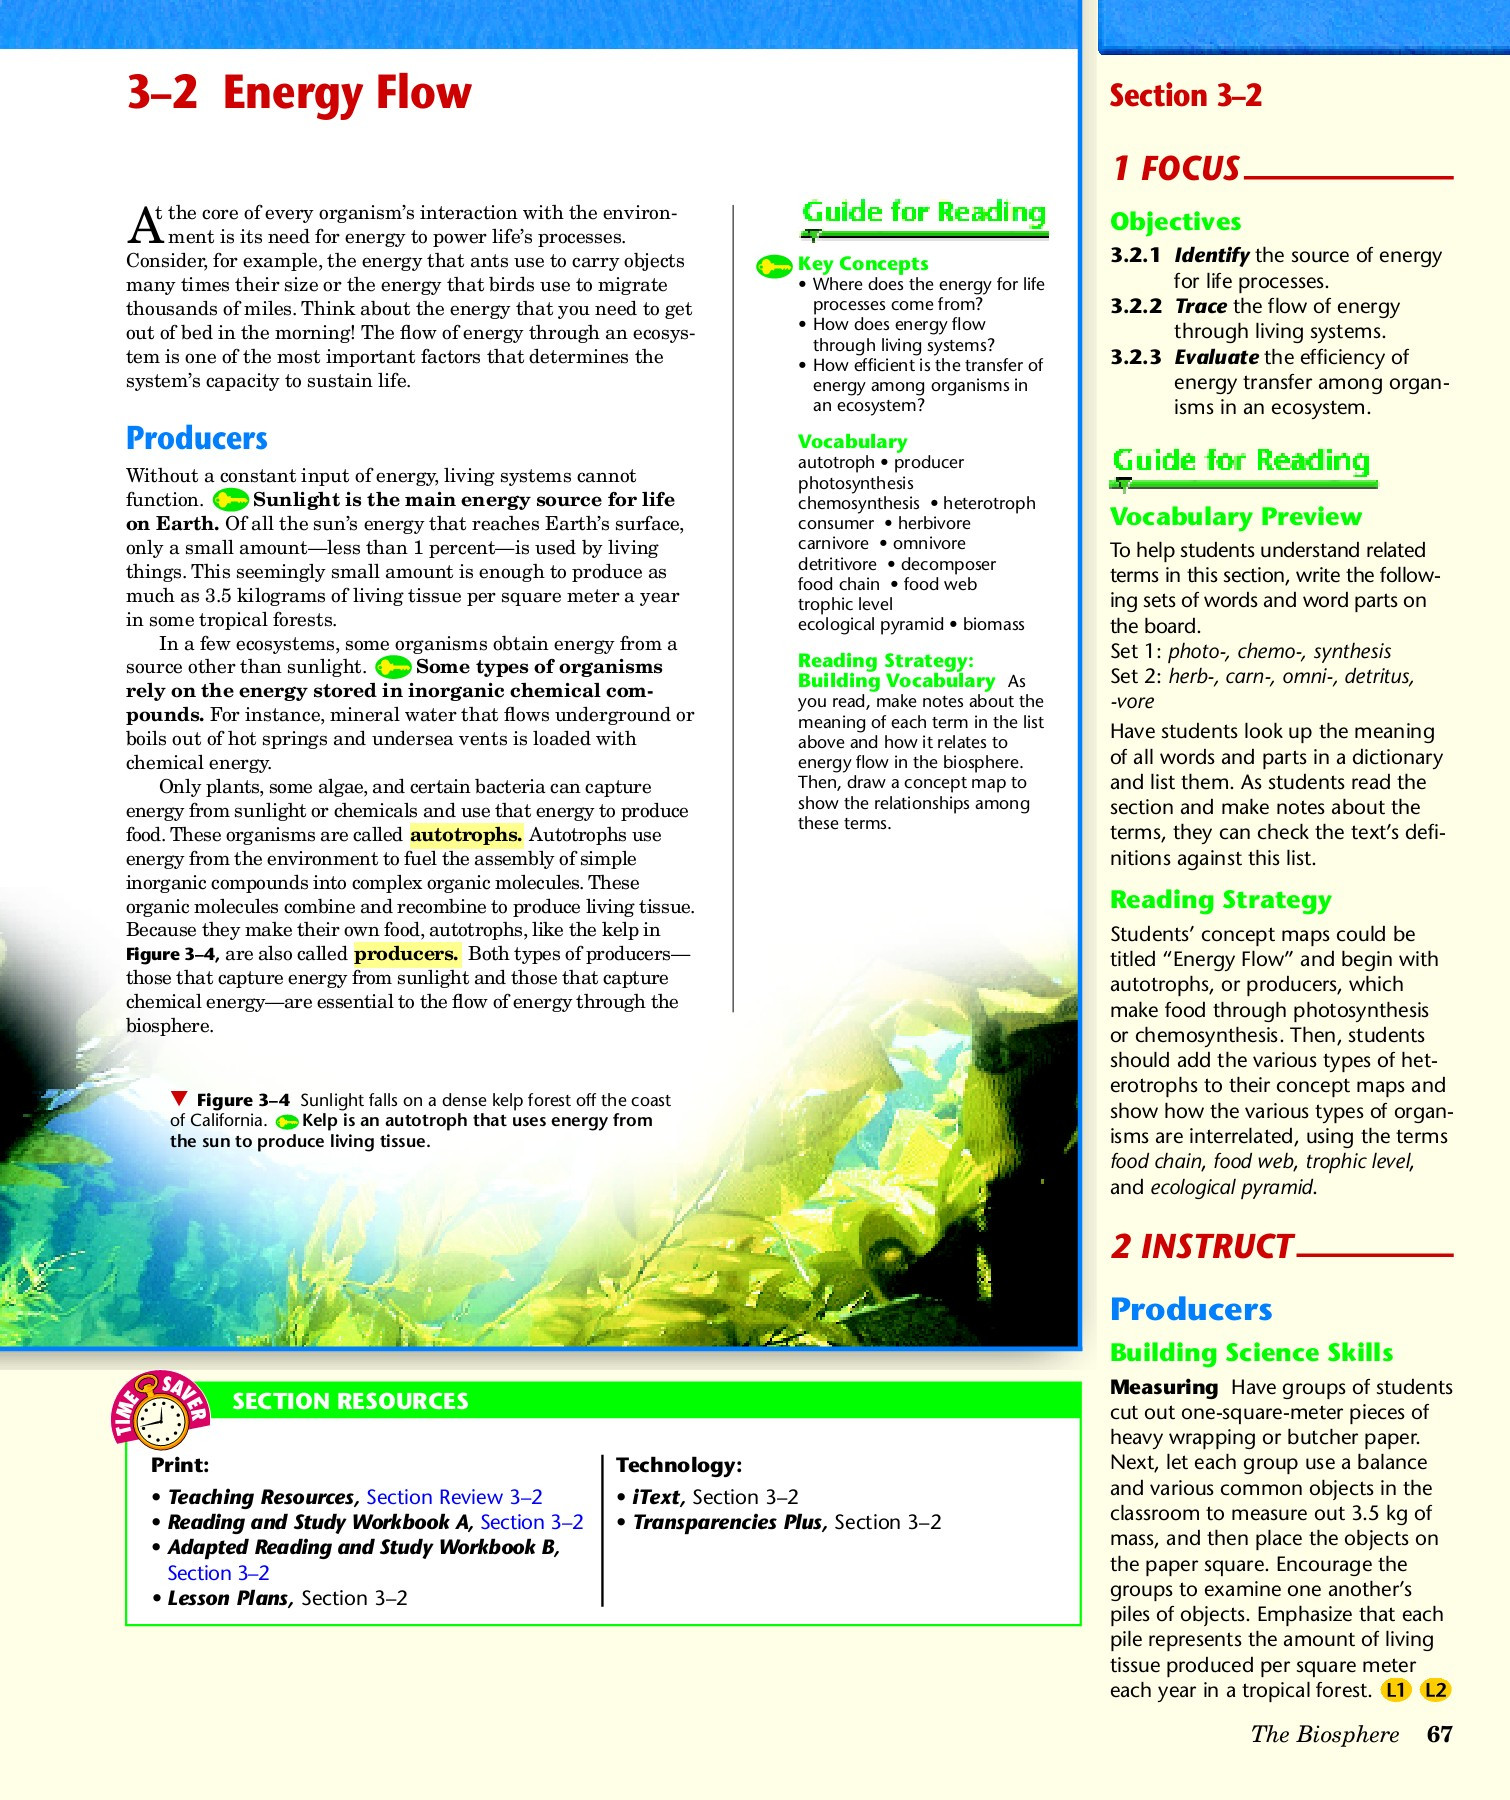 30 Energy Flow Worksheet Answers | Education Template